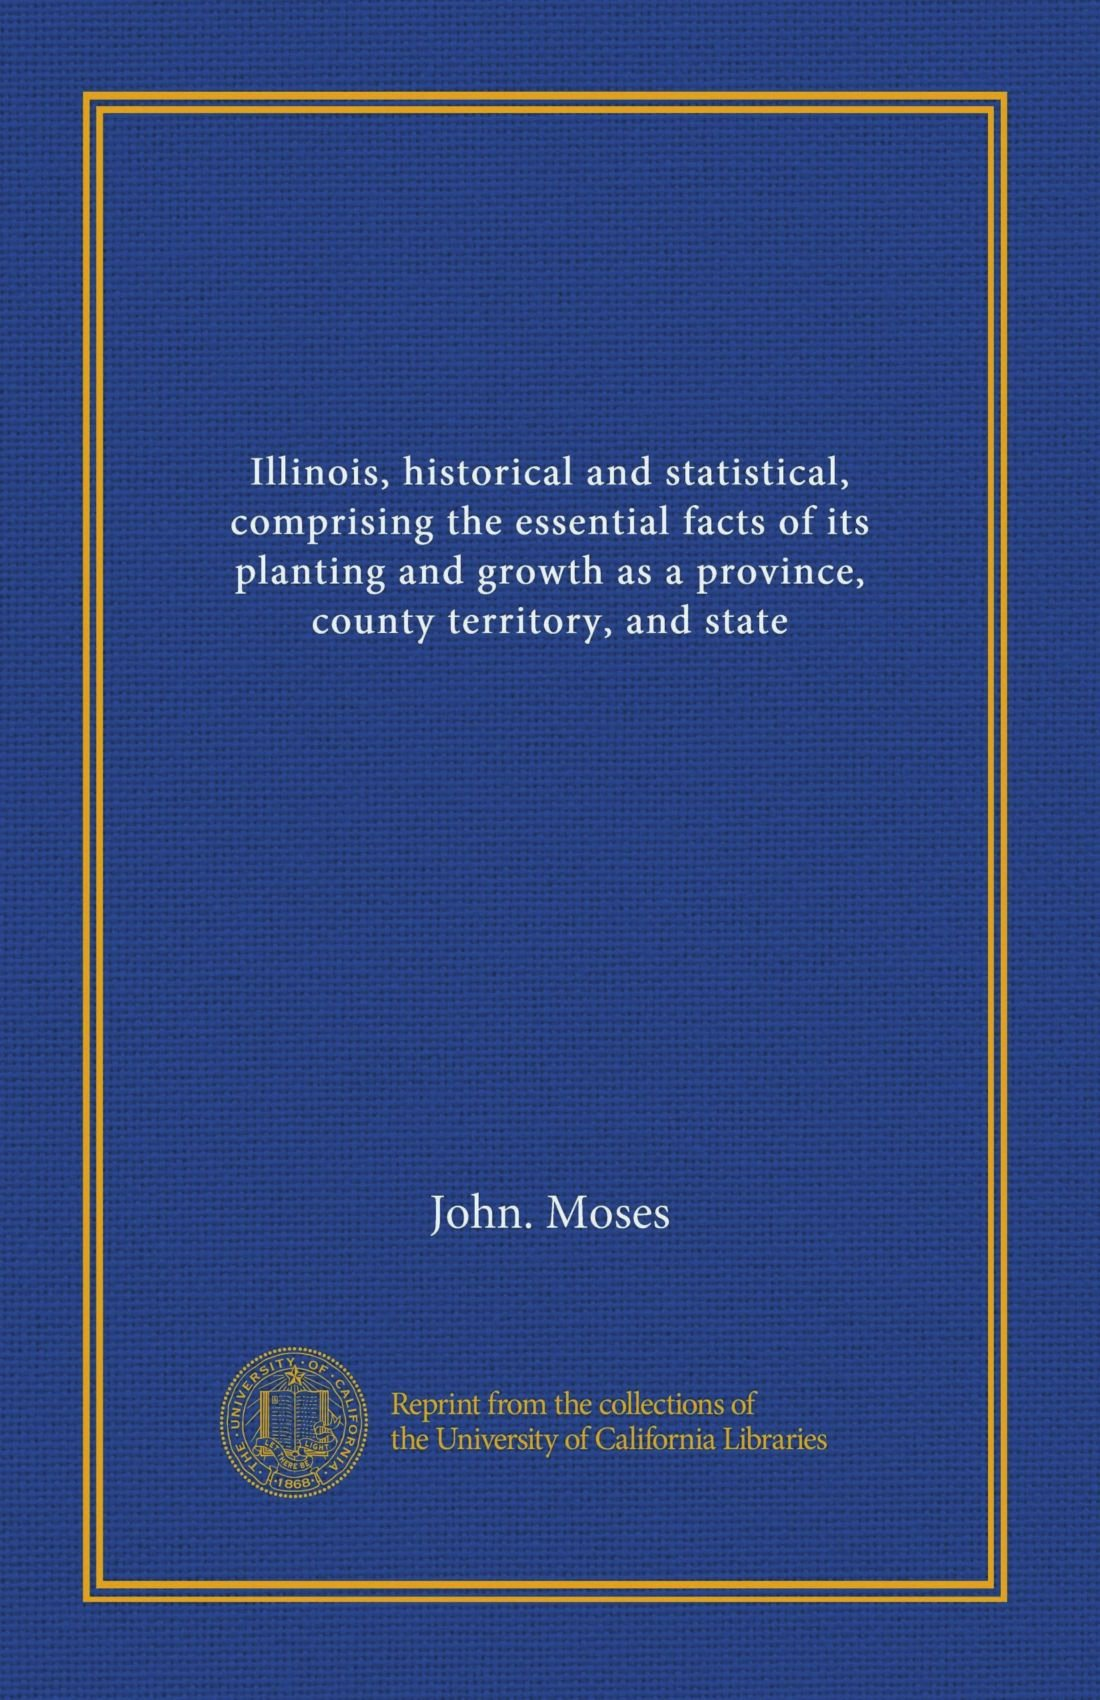 Illinois, historical and statistical, comprising the essential facts of its planting and growth as a province, county territory, and state pdf epub